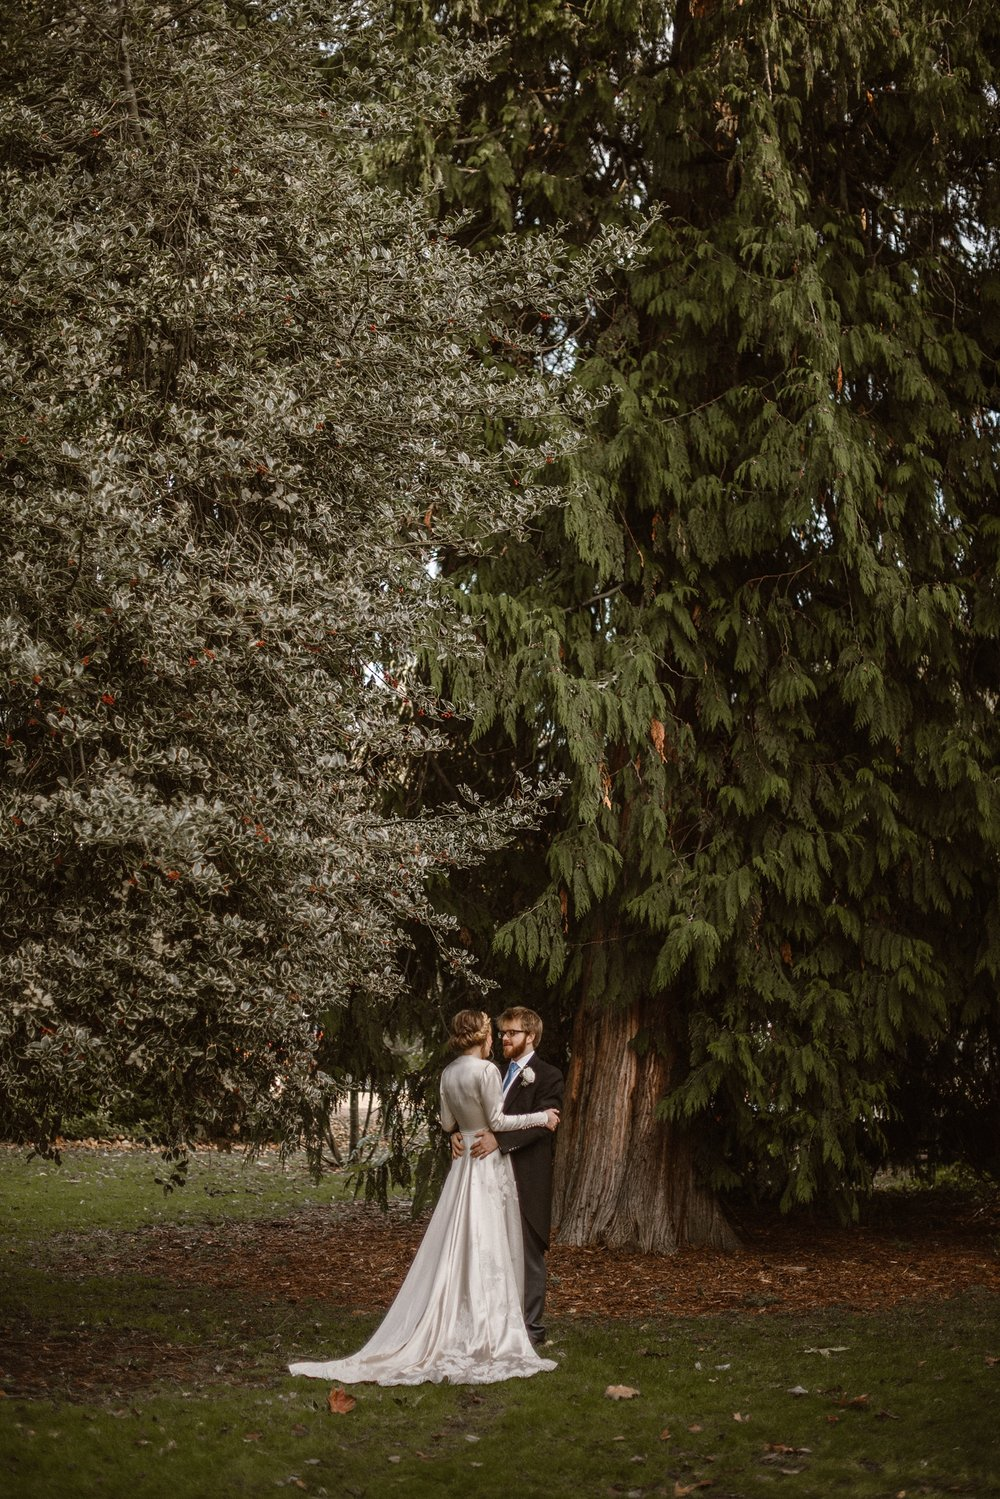 Edinburgh-Scottish-wedding-photographer_53.jpg